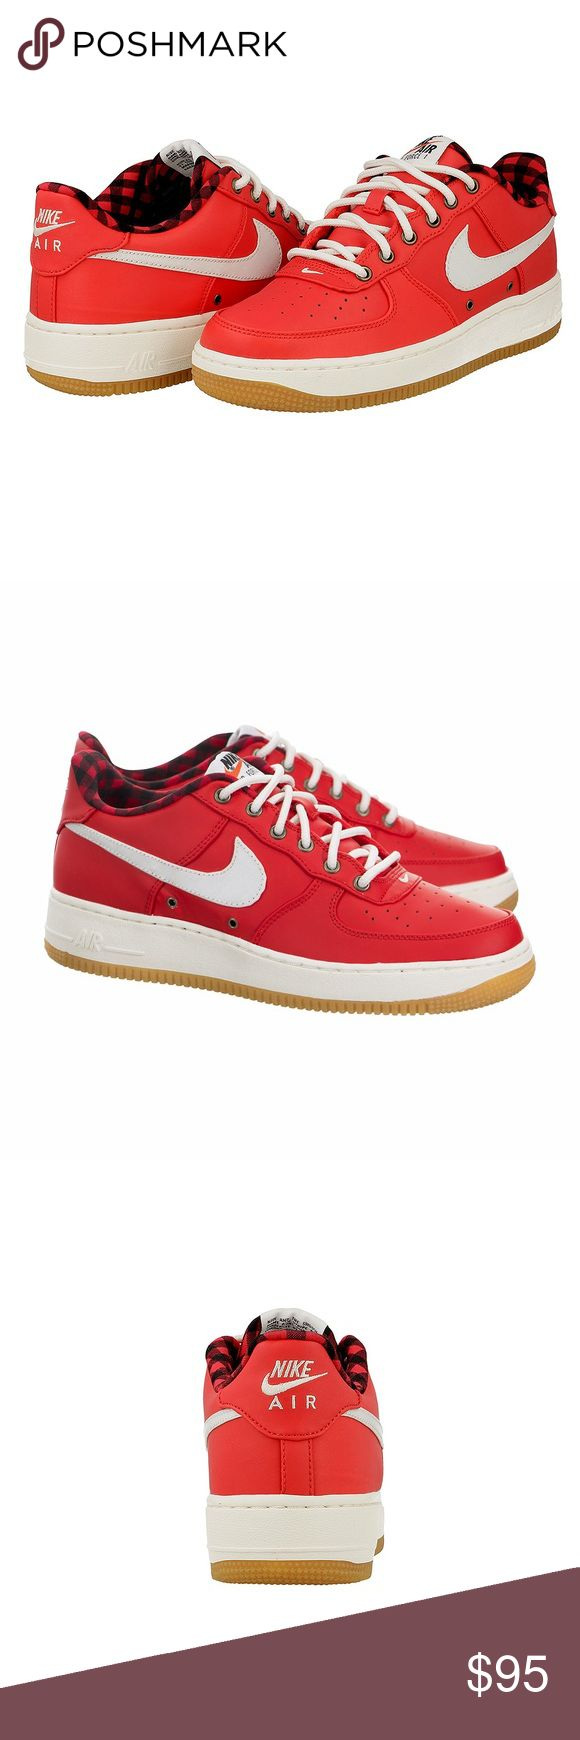 NIKE AIR FORCE 1 LV8 RED SHOES WOMENS SIZE 8 Shoes are a size 6.5 YOUTH GS. Which equals to a women's size 8. I added a picture of the sizing chart. Please take a look at it if you have any sizing questions. No box. Nike Shoes Sneakers